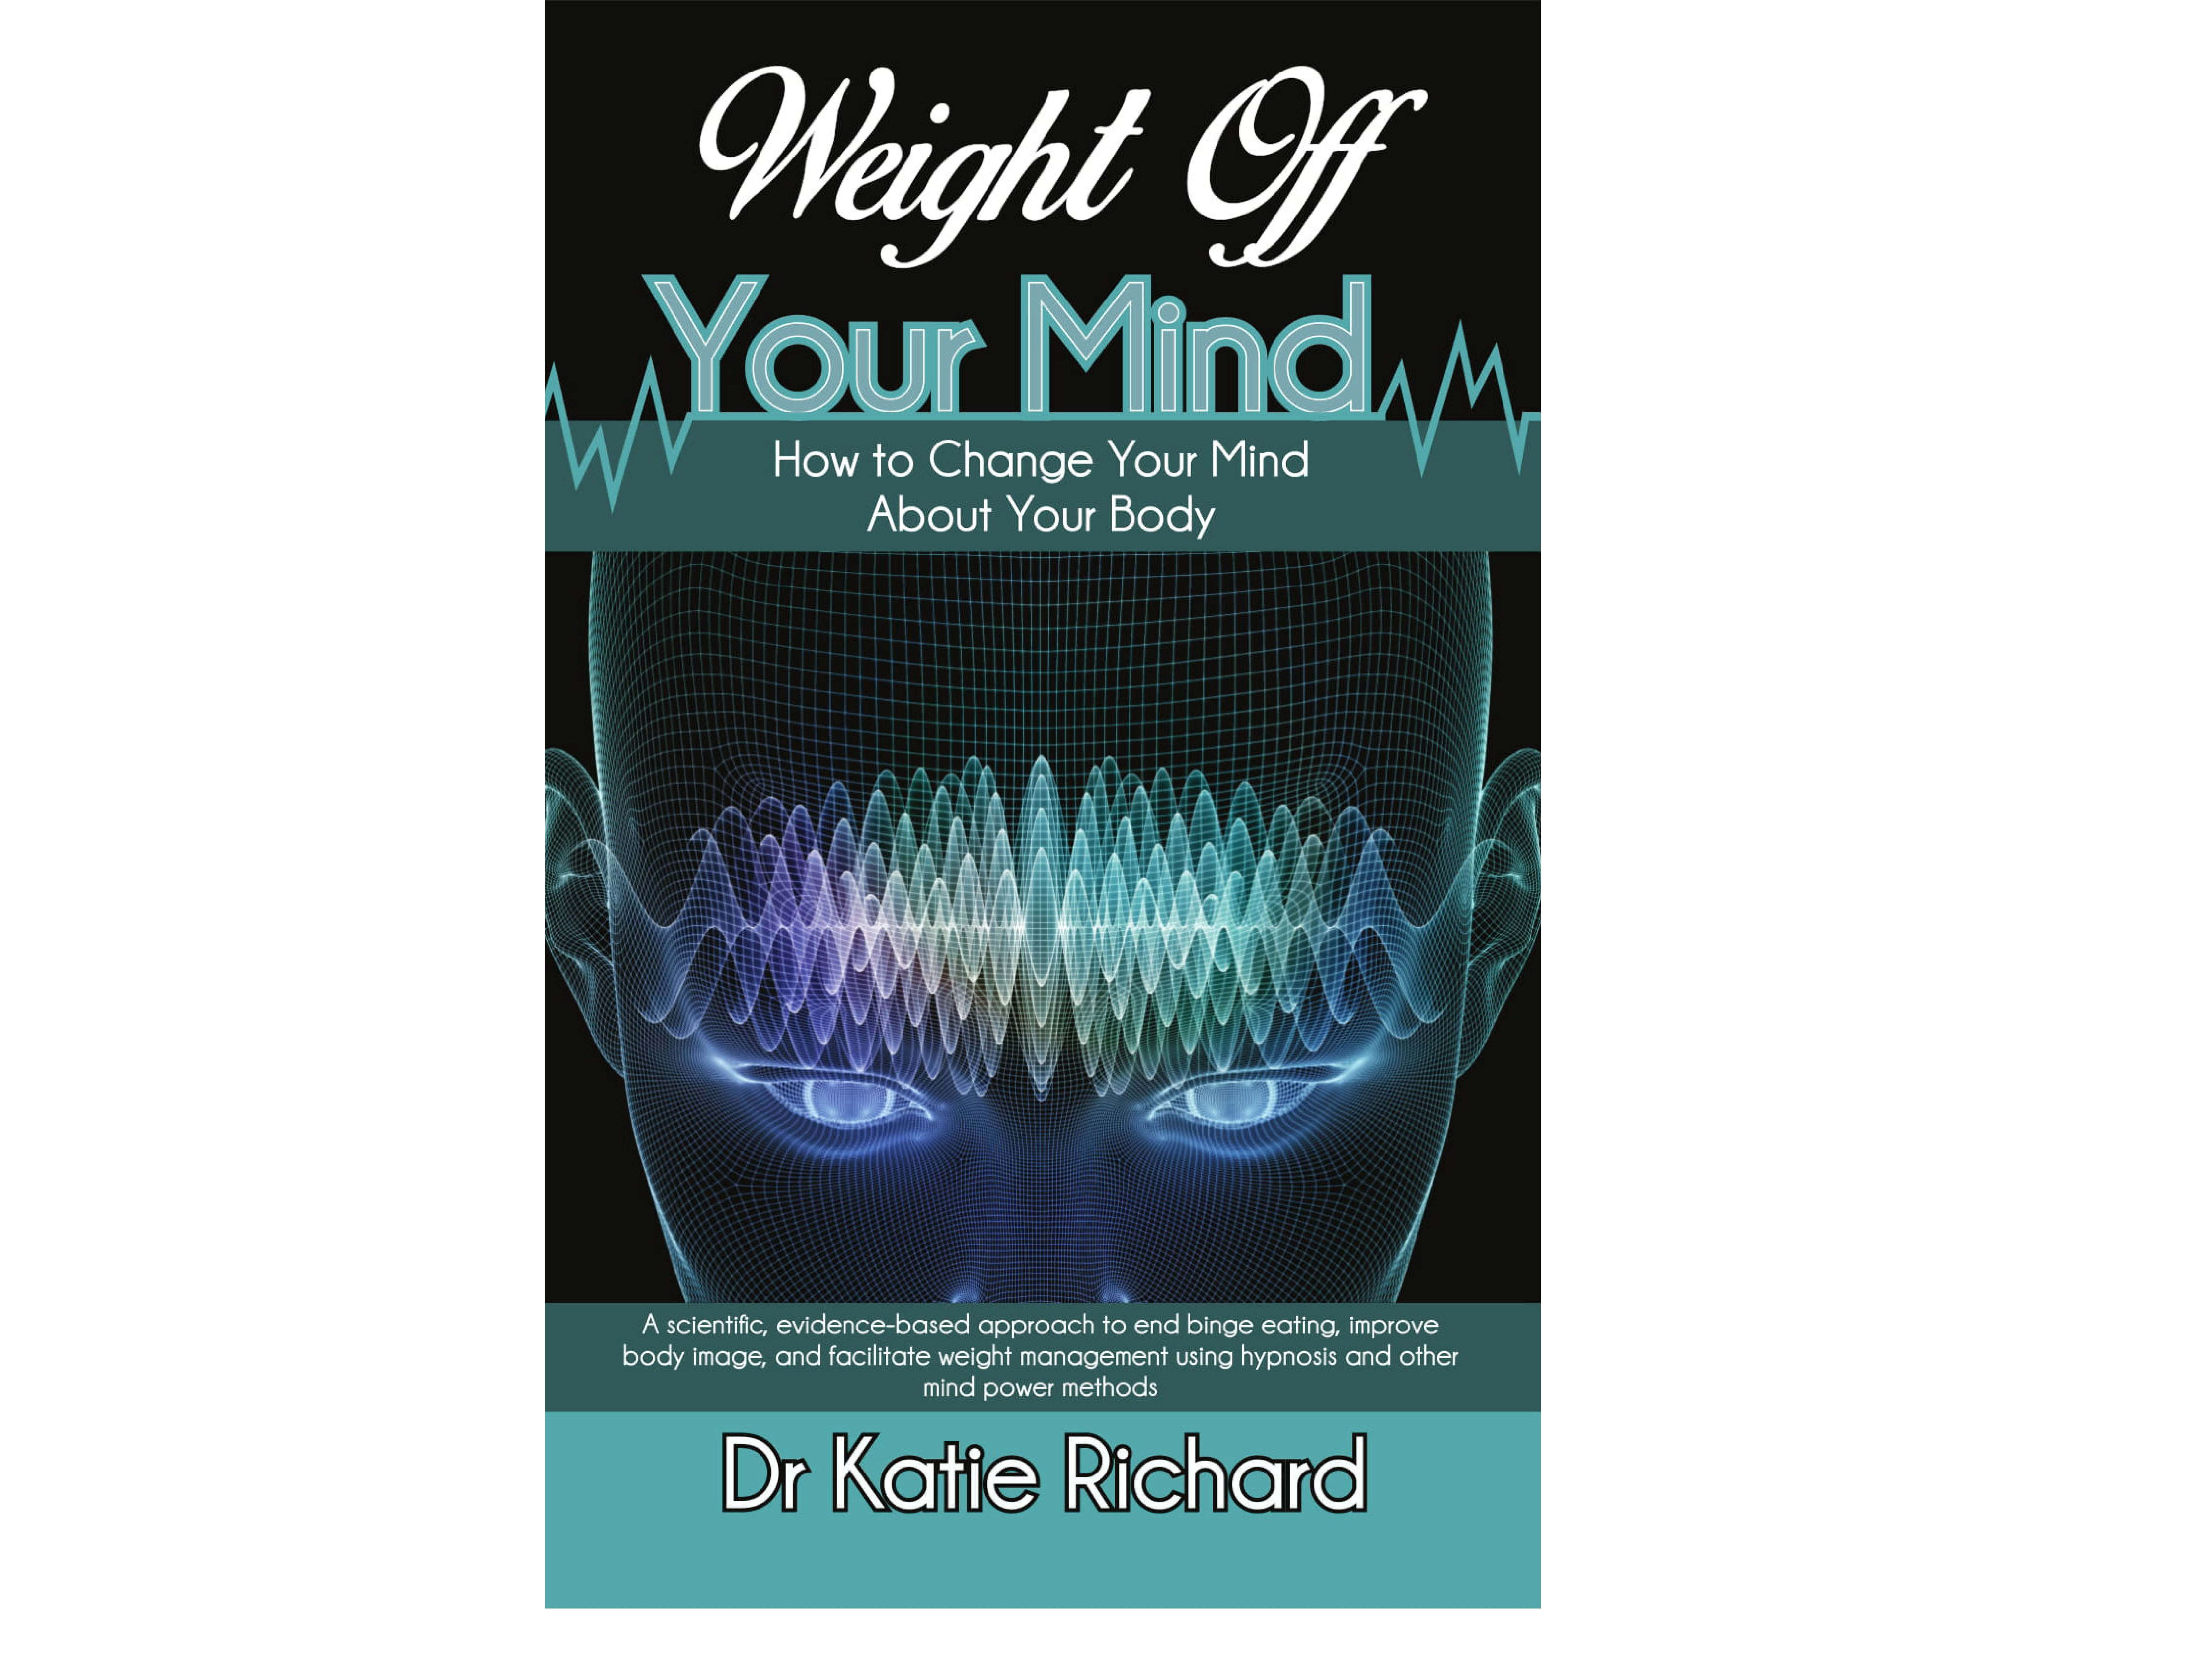 'Weight Off Your Mind' books sweepstakes